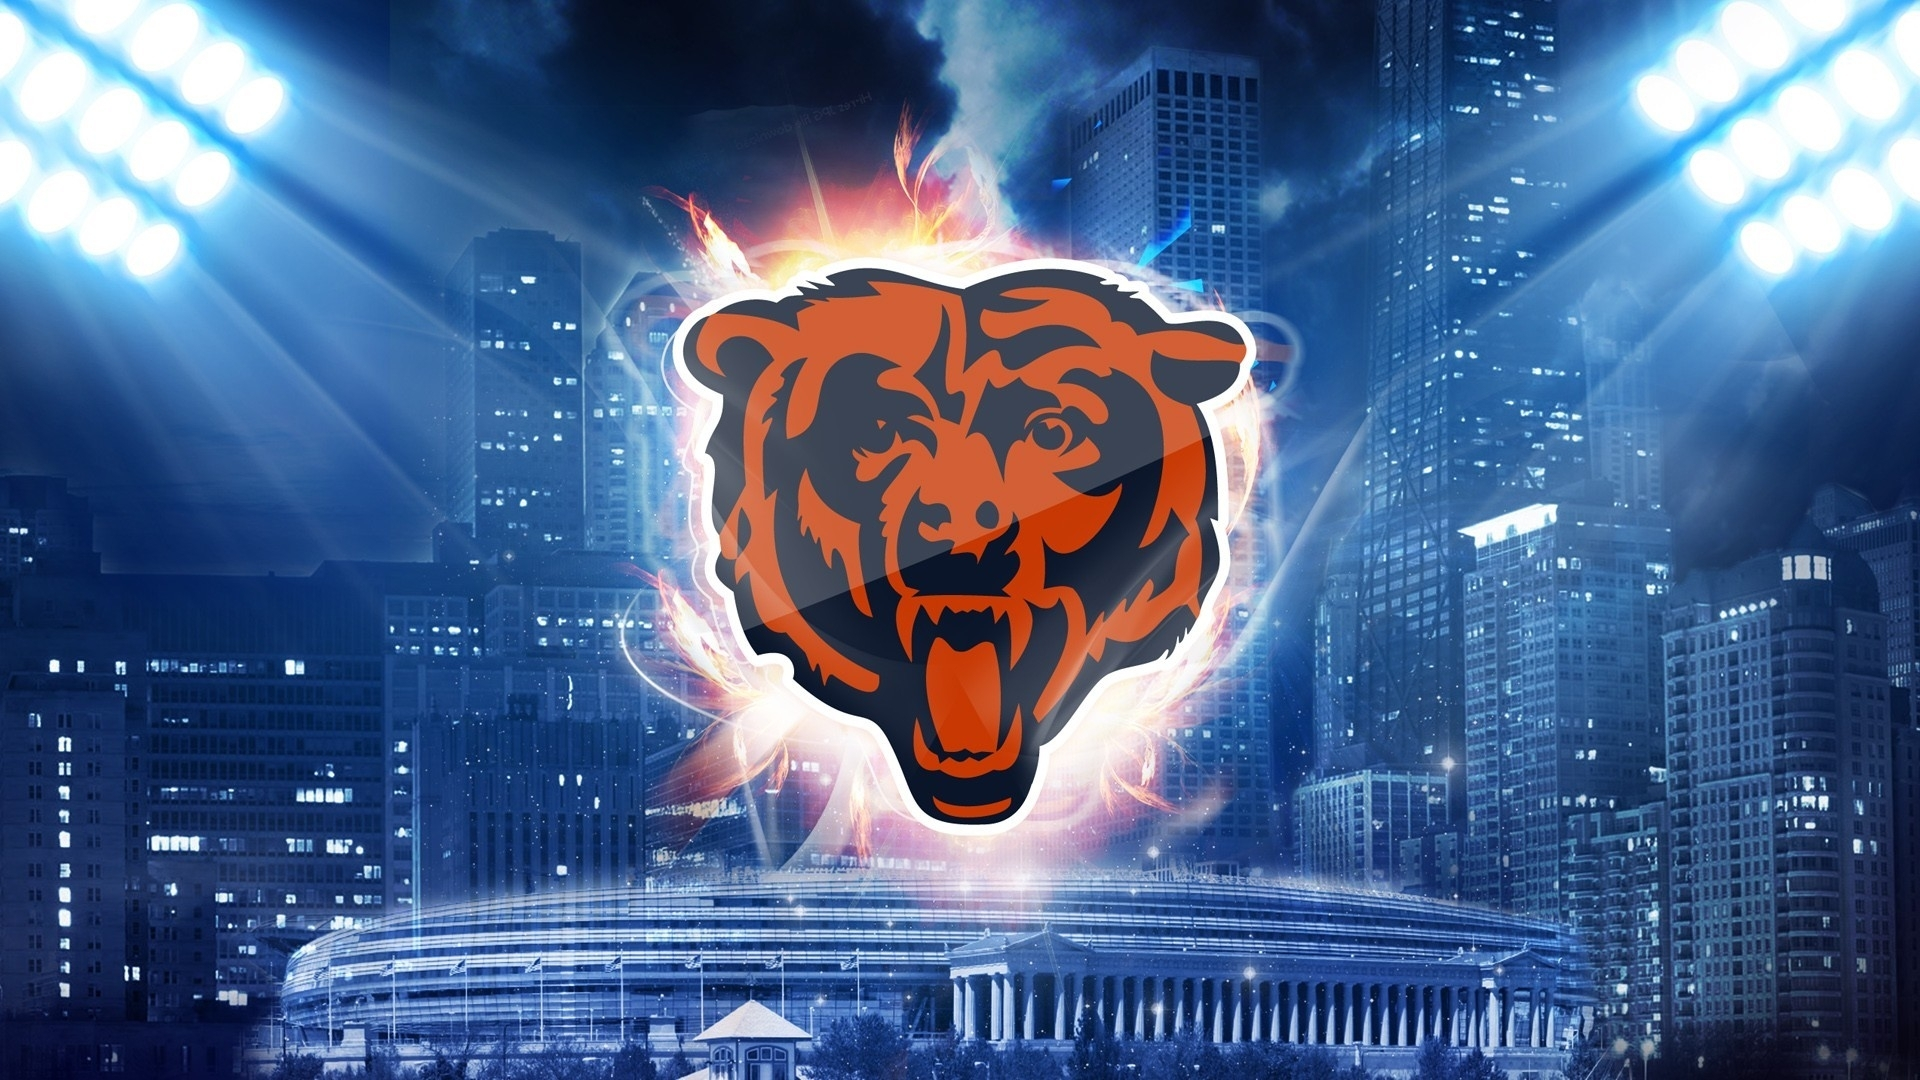 chicago bears logo wallpapers wallpapers - new hd wallpapers